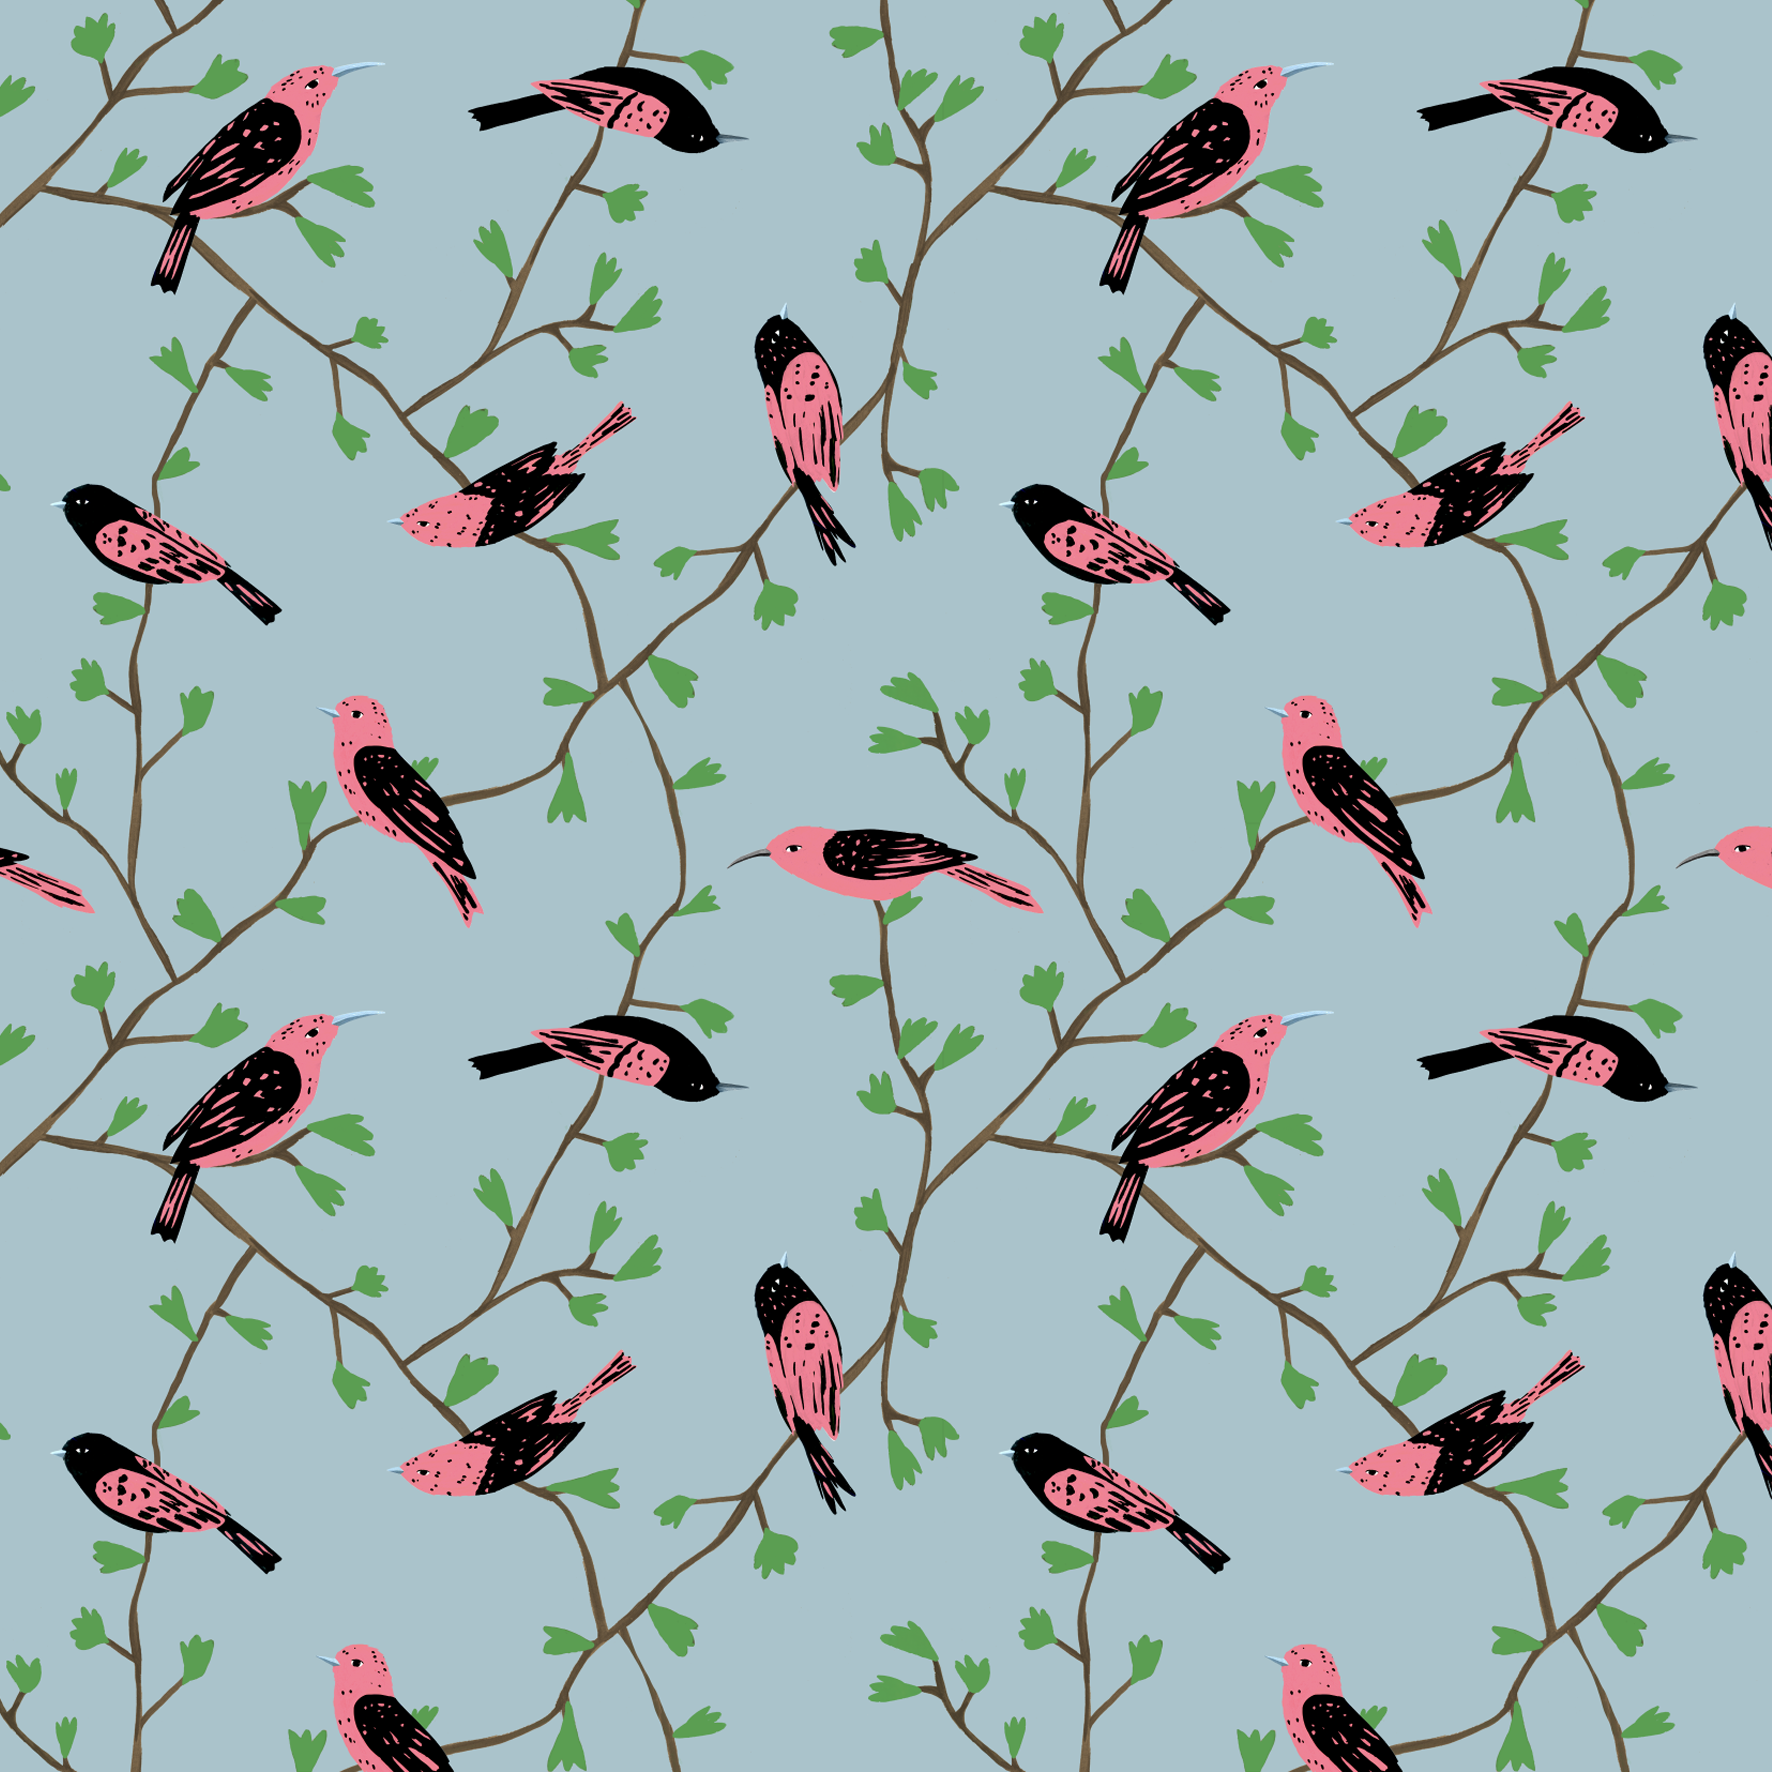 melissa boardman pink birds in vines pattern blue.png